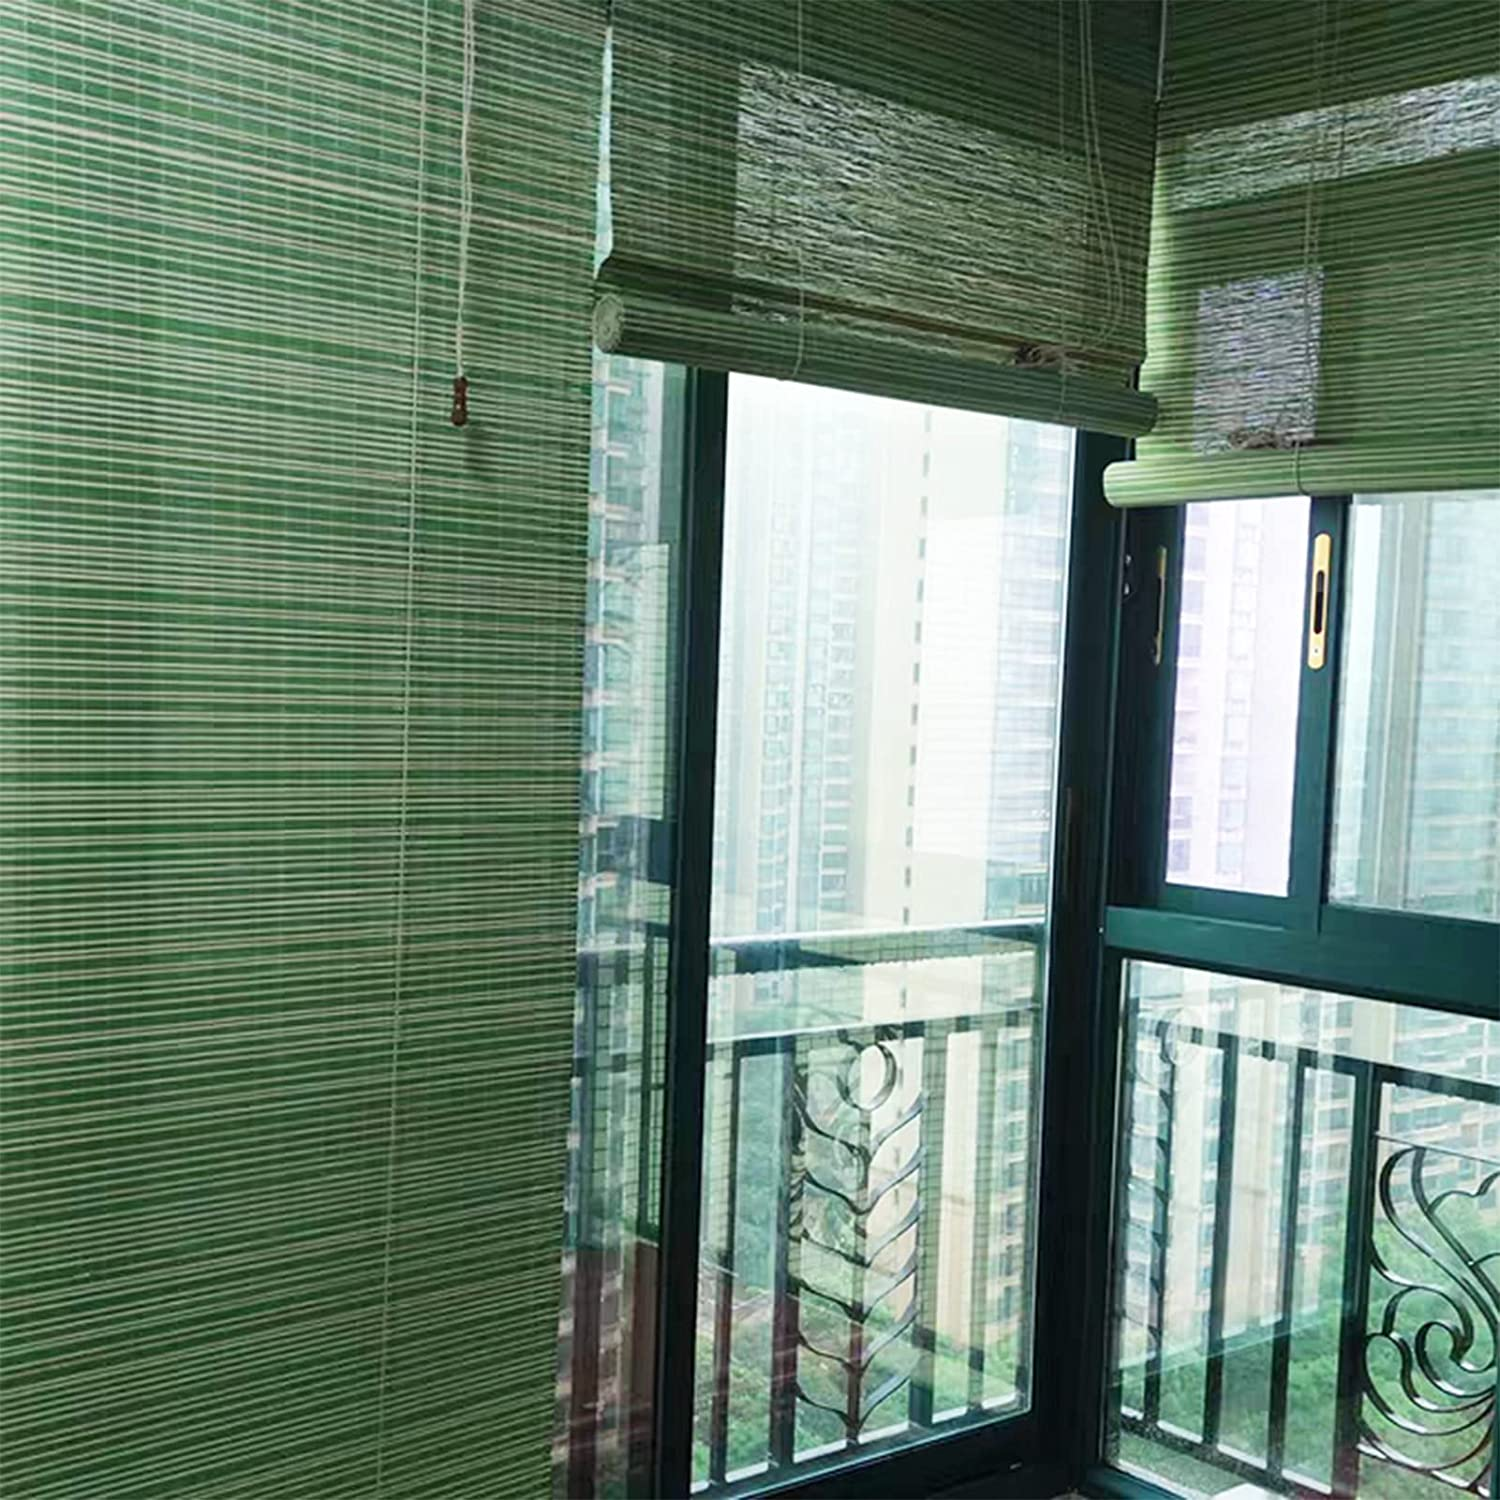 Special price for a limited Fashion time Balcony Blackout Roller Shades Green Bamb White Filtering Light